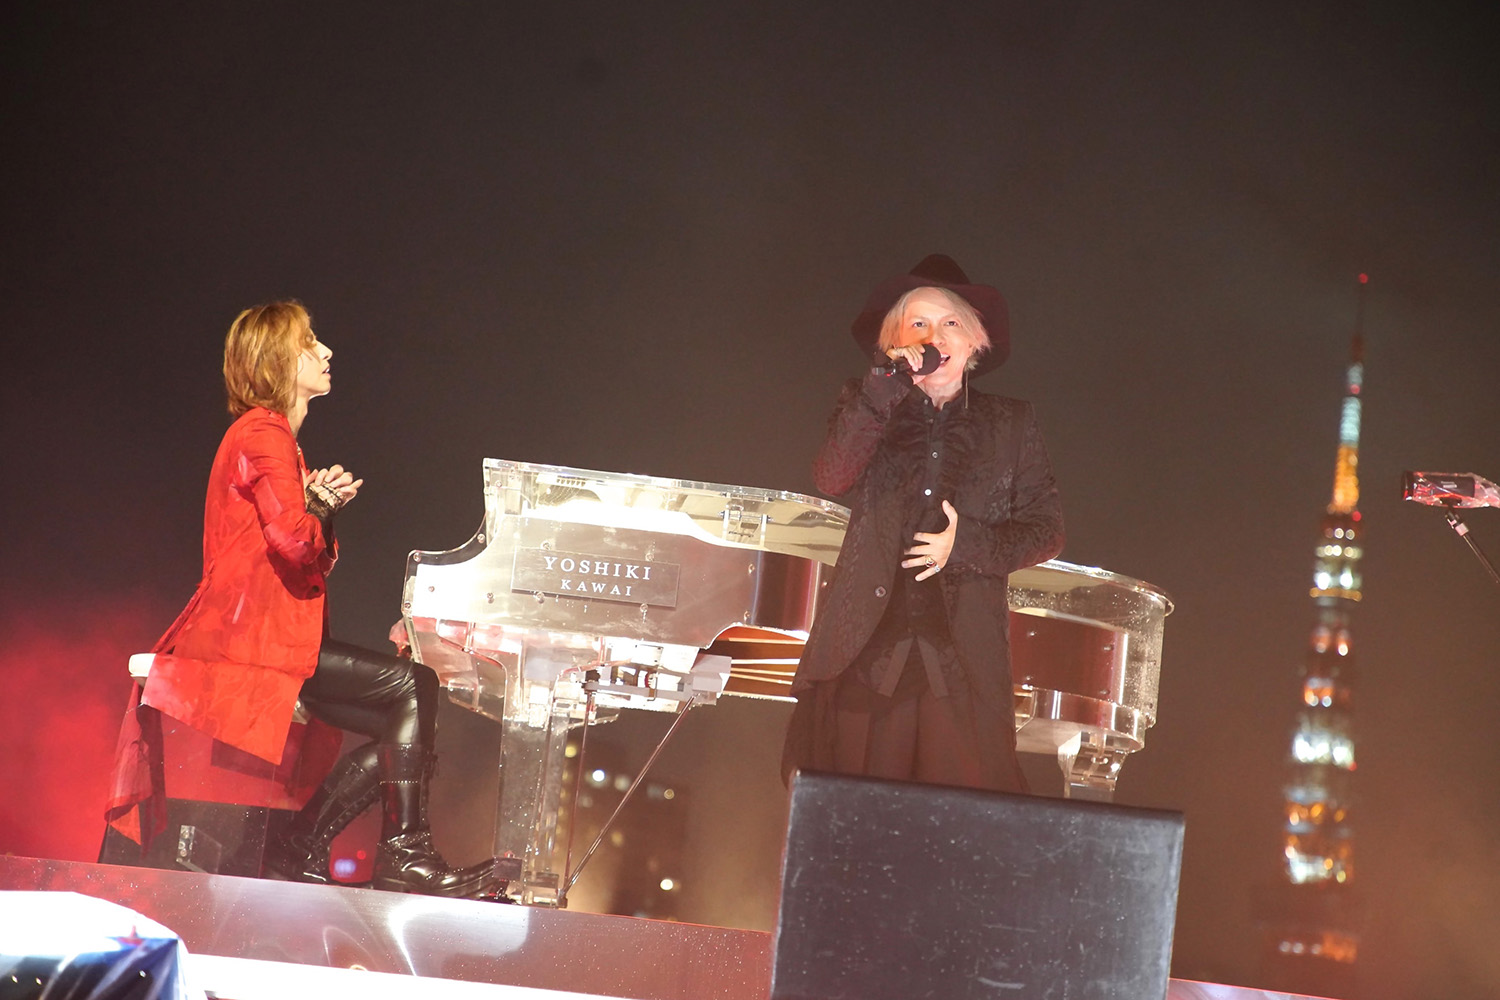 JRock247-Yoshiki-Hyde-Red-Swan-Music-Station-20180917-E4668